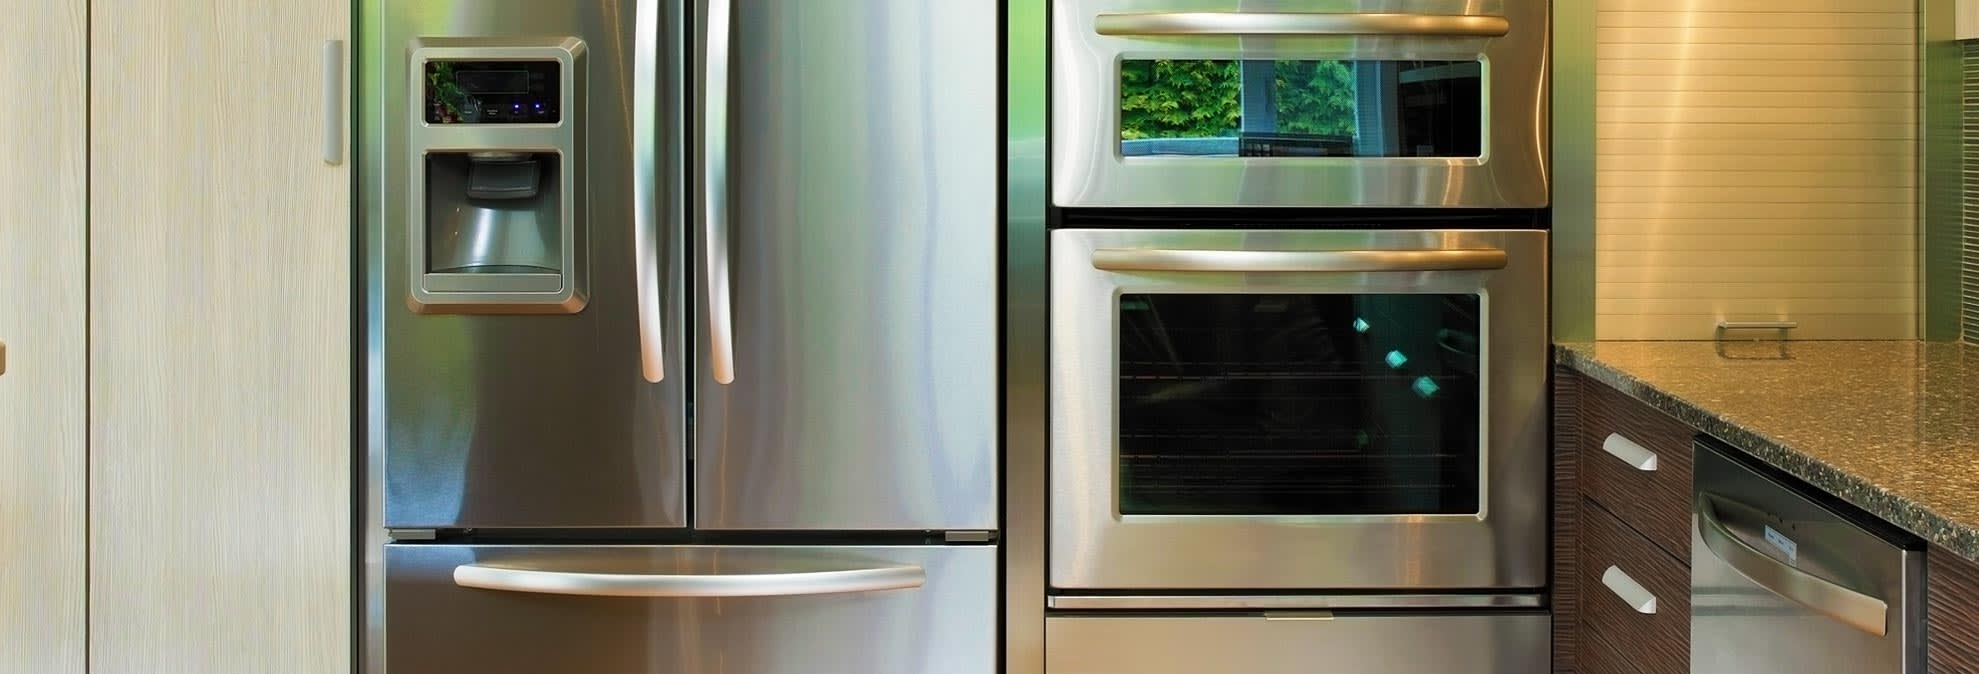 Best Labor Day Refrigerator Deals - Consumer Reports